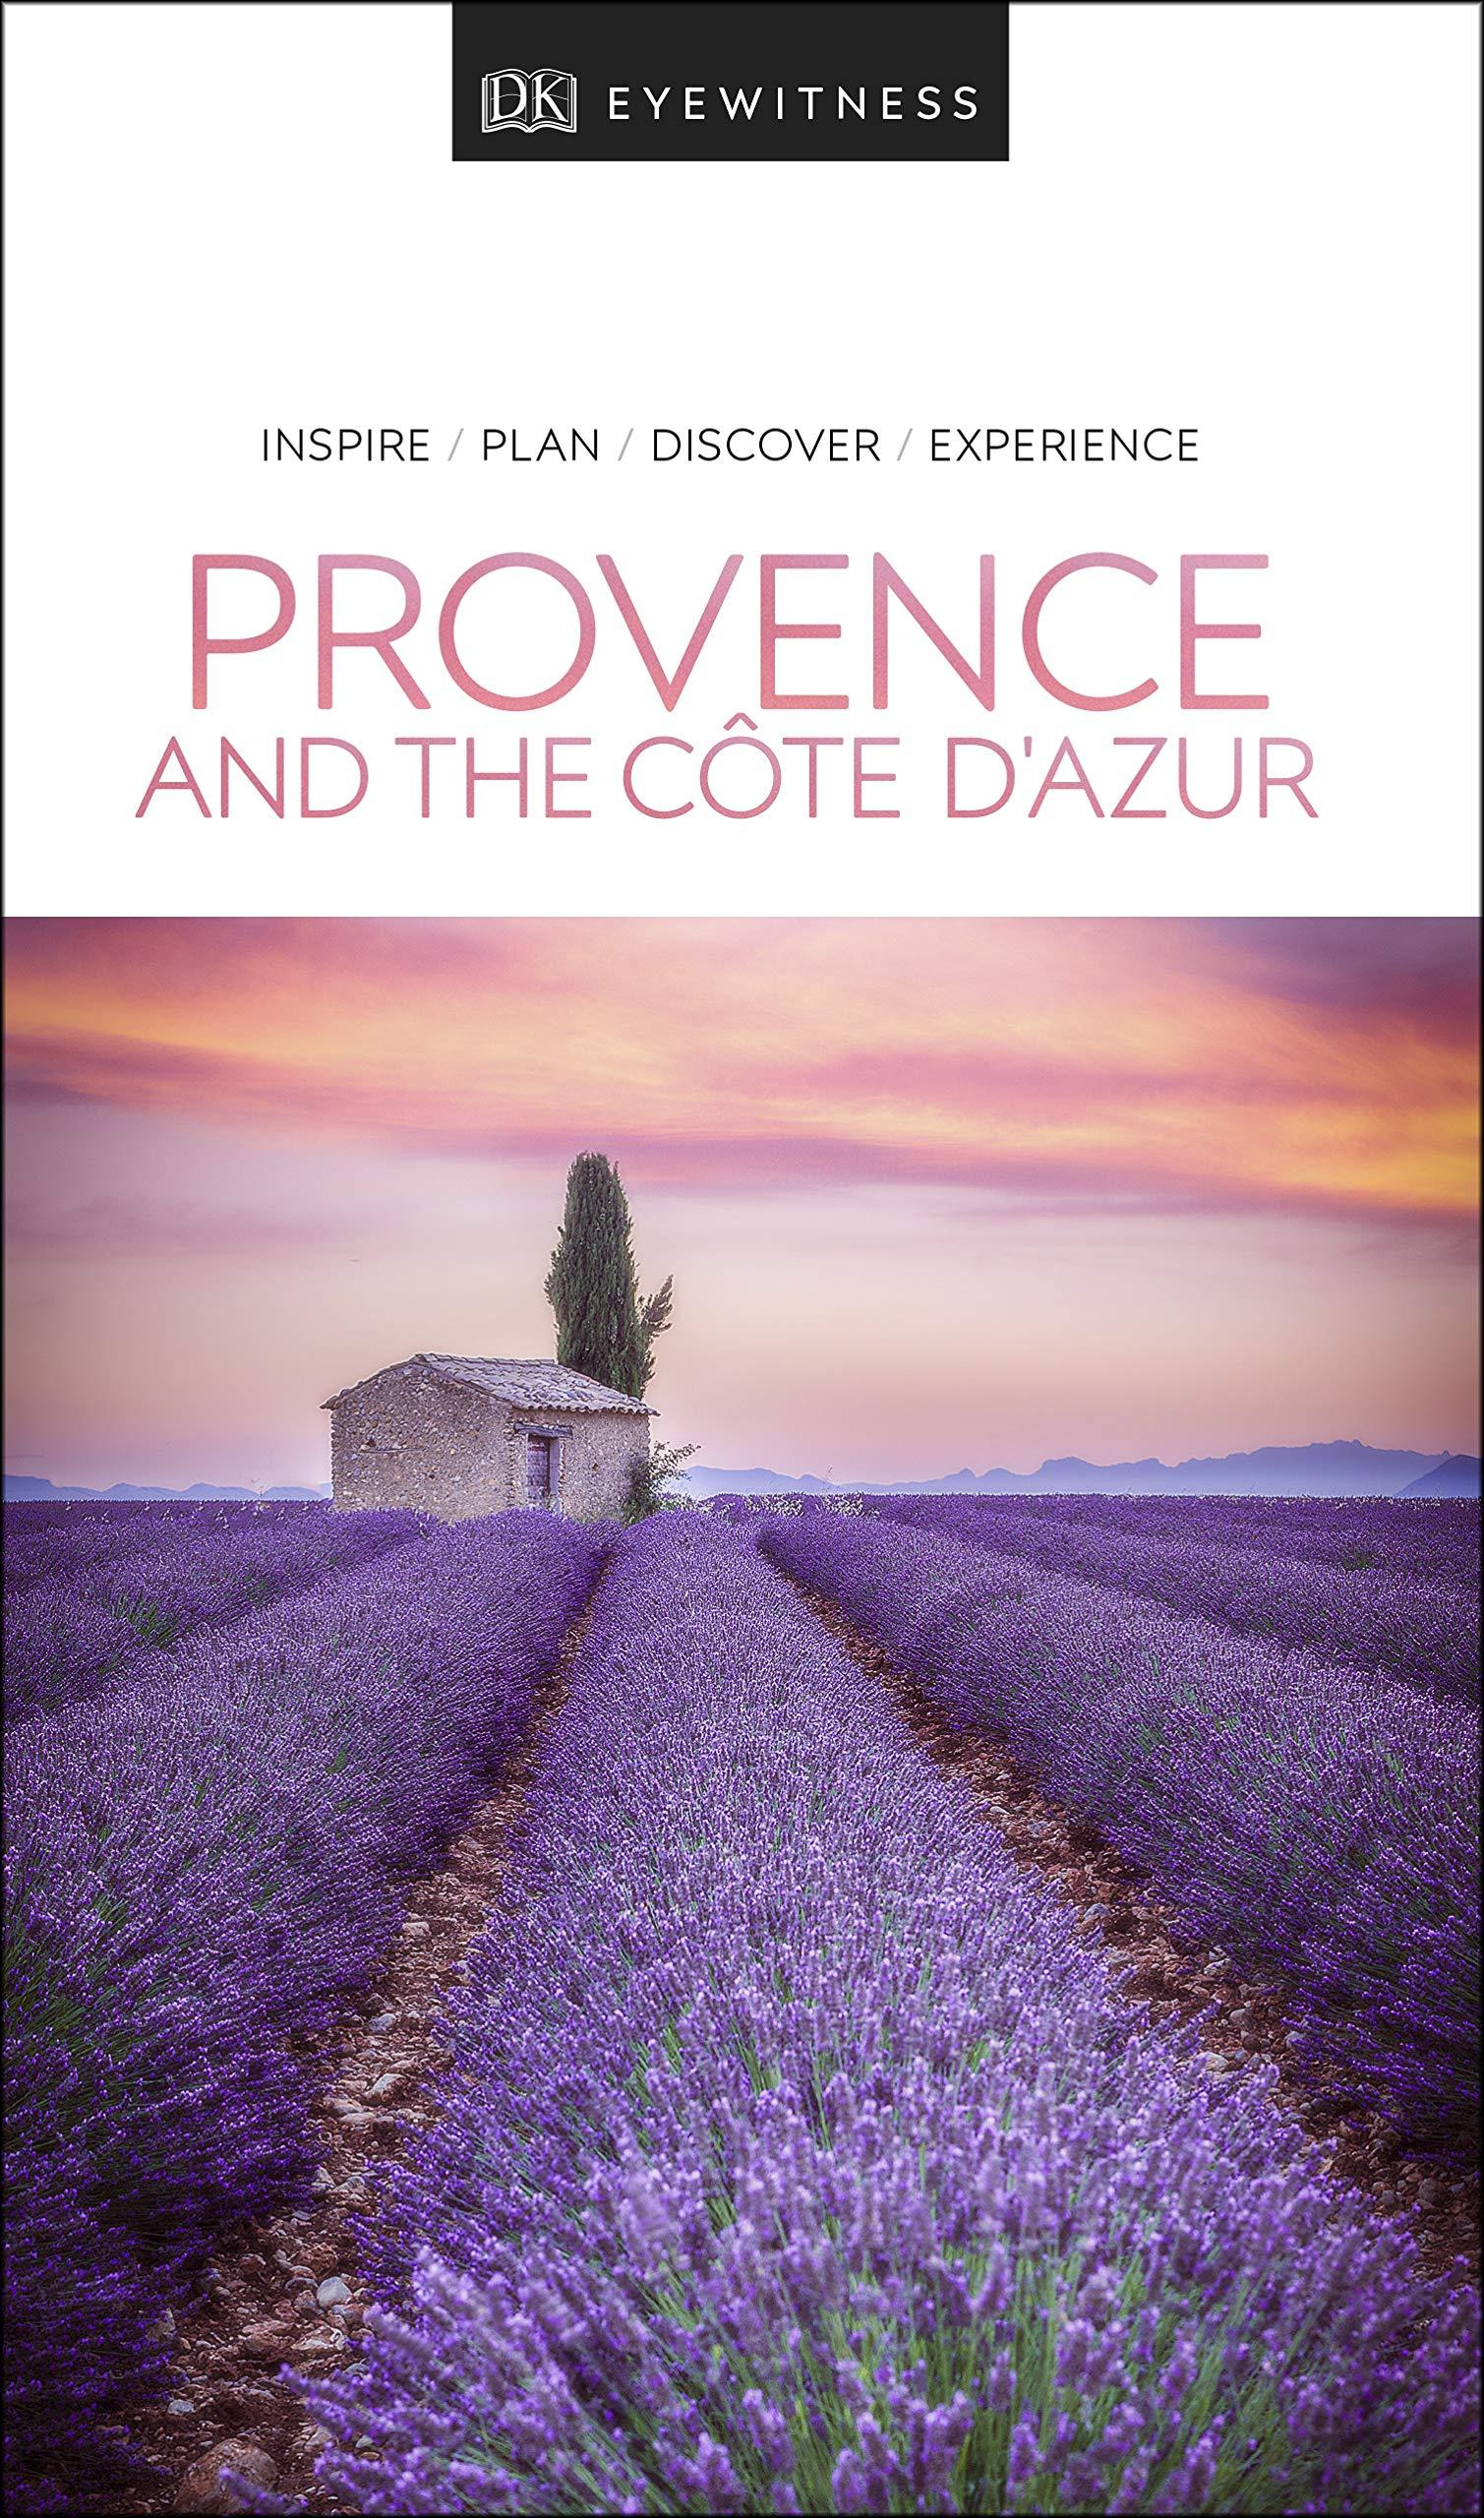 DK Eyewitness Travel Guide Provence and the Cote d Azur by DK Eyewitness Travel